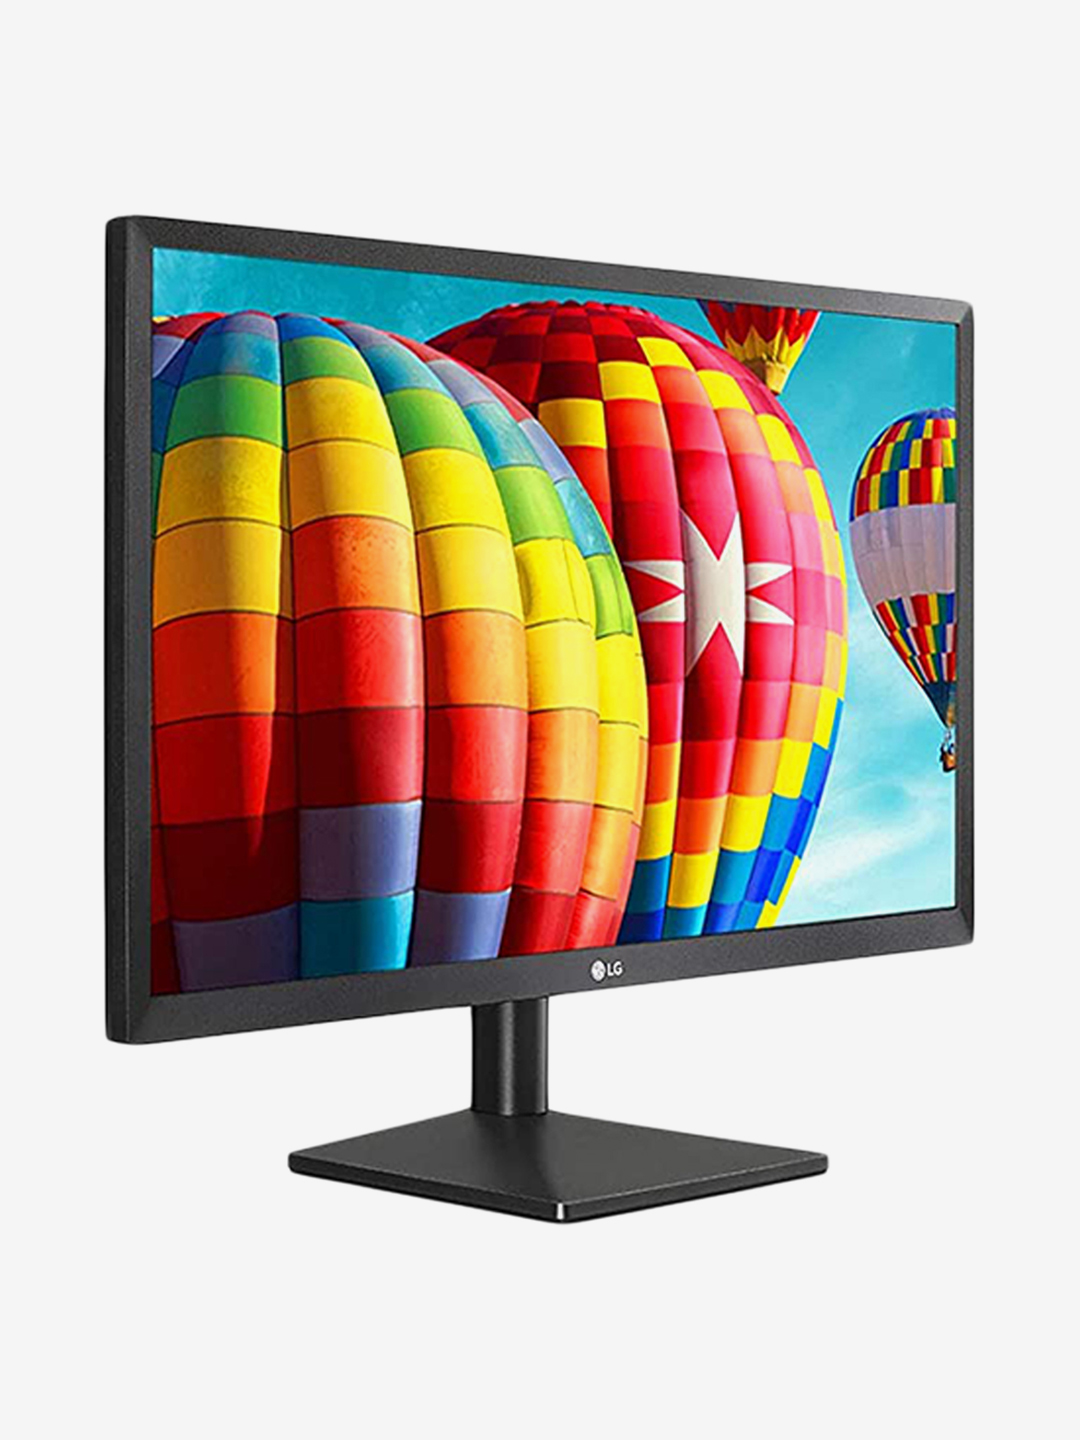 LG 9MK9H 9 cm (9 Inches) IPS Full HD LED Monitor (Black) from